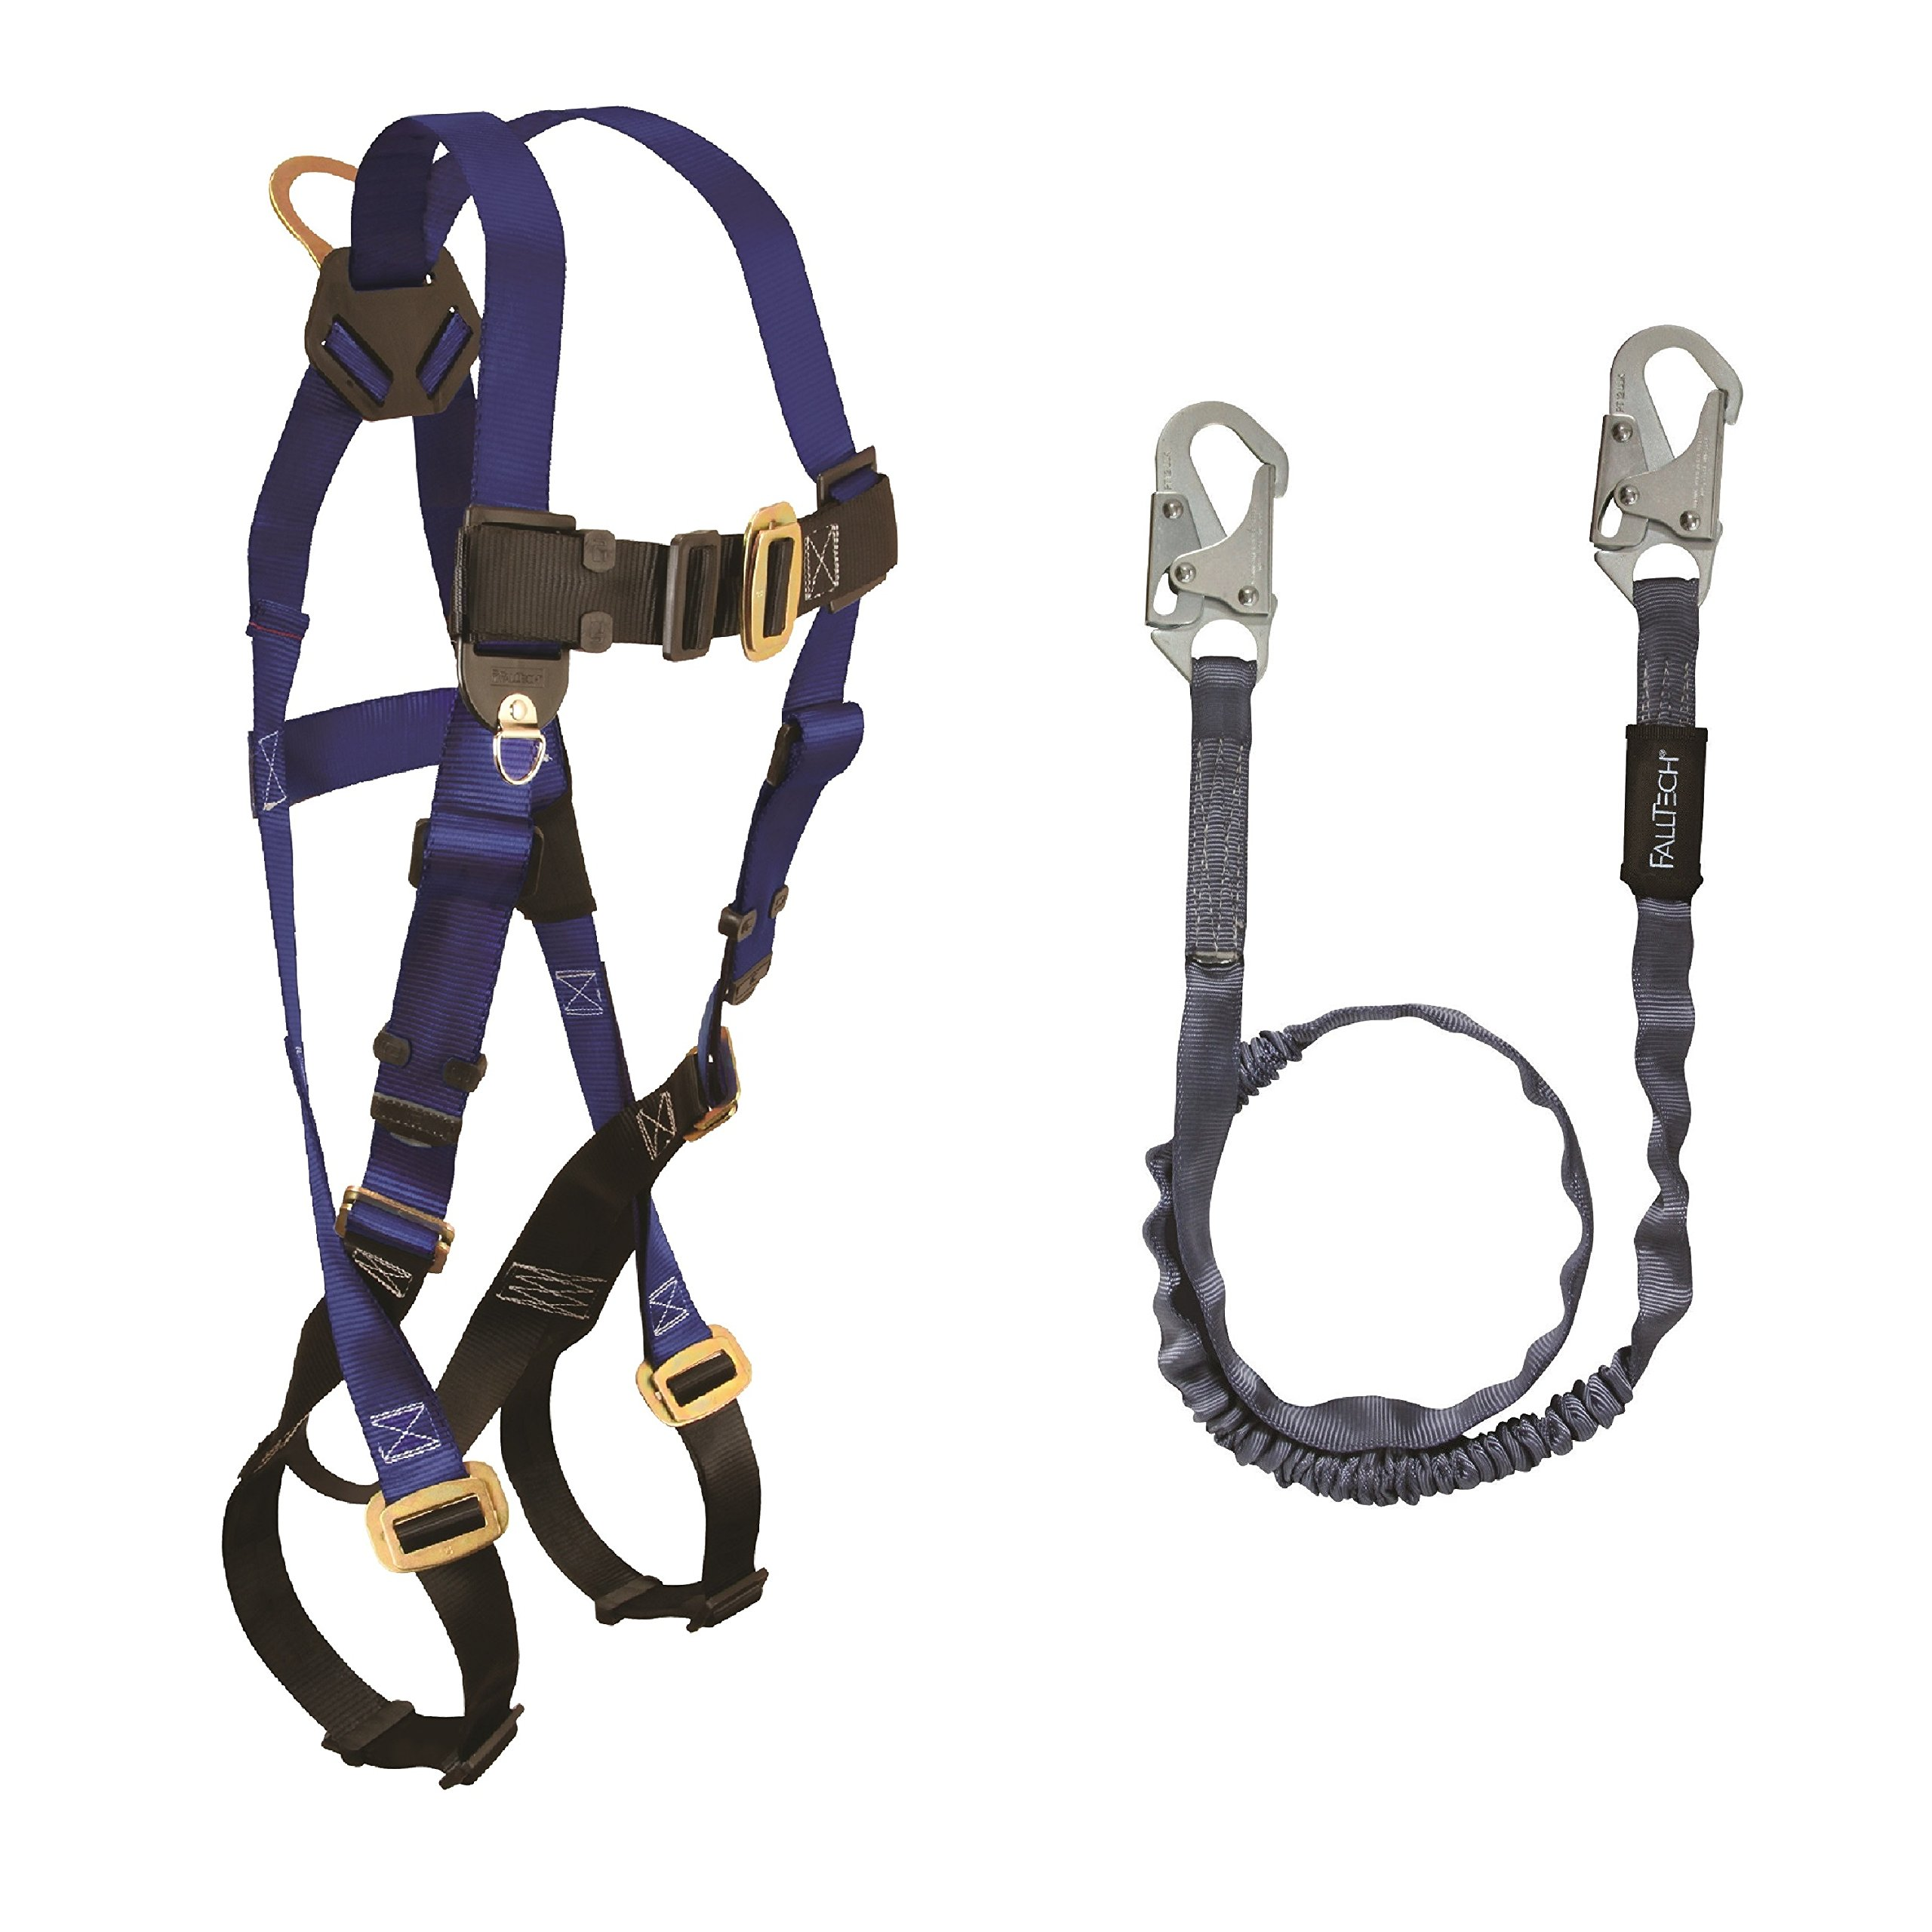 FALLTECH FALL PROTECTION HARNESS/LANYARD COMBO (7015 HARNESS W/ 8259 LANYARD) by FallTech (Image #1)